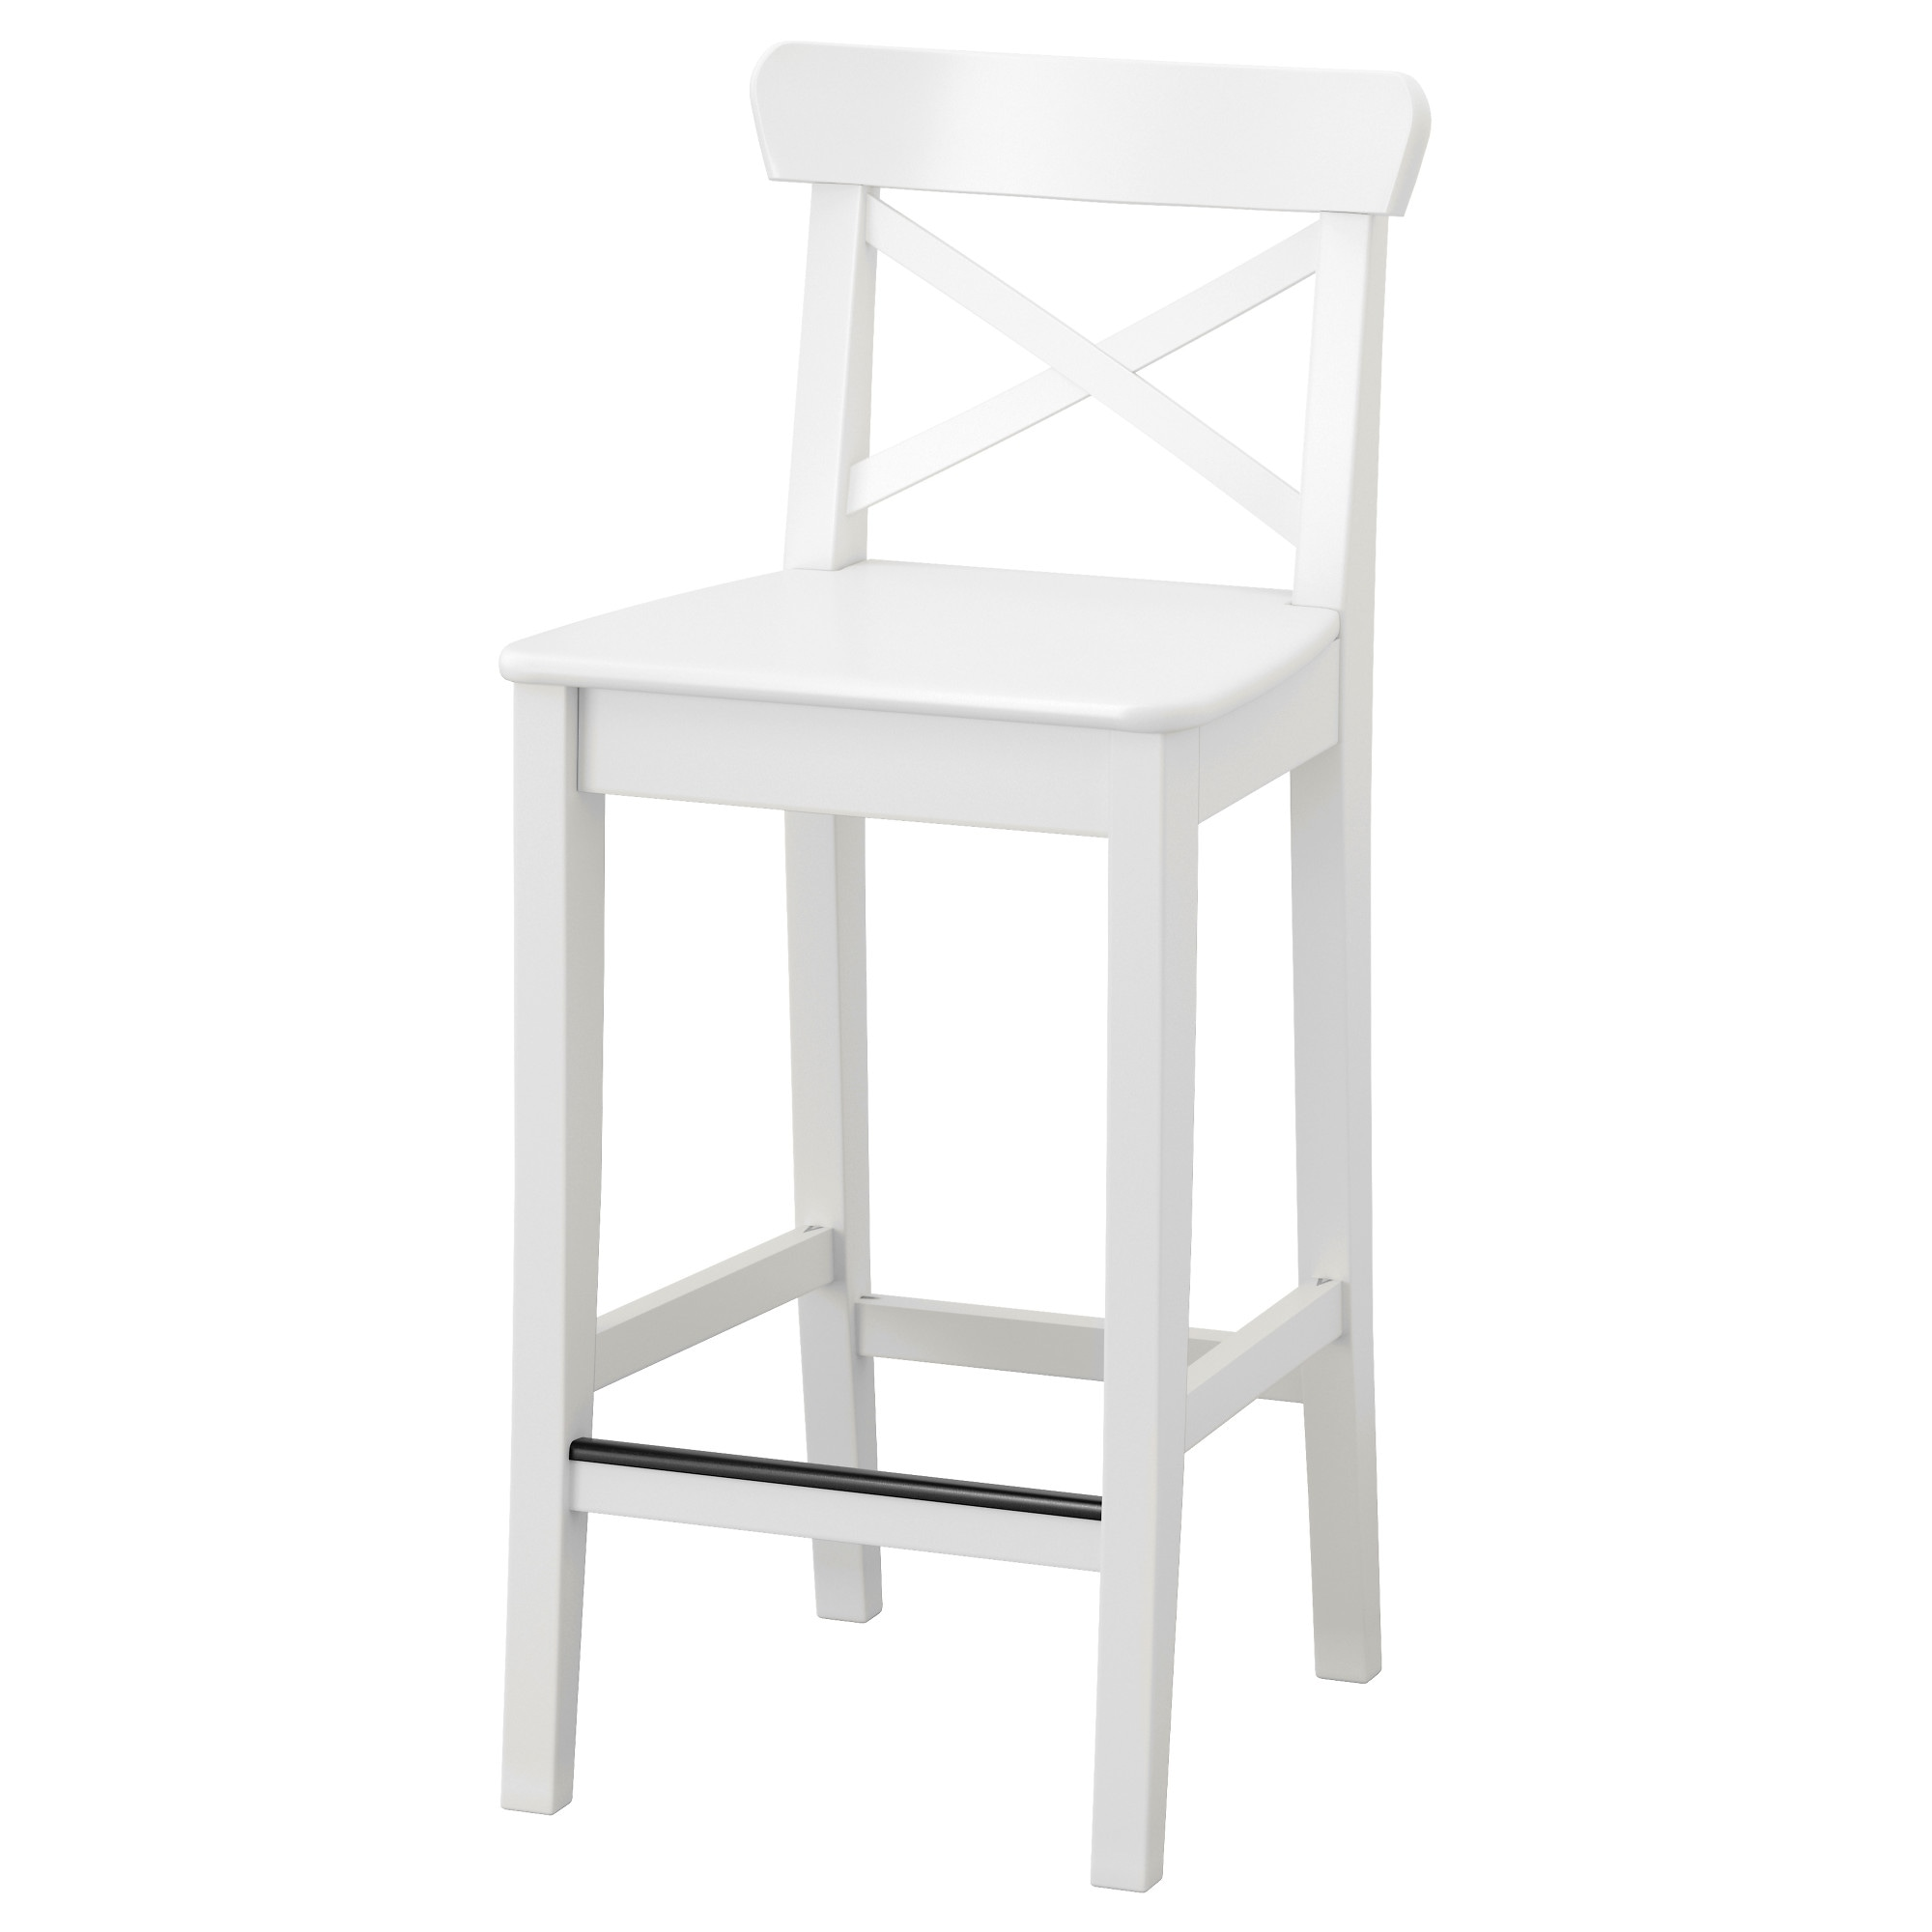 Ingolf Bar Stool With Backrest 29 18 Ikea